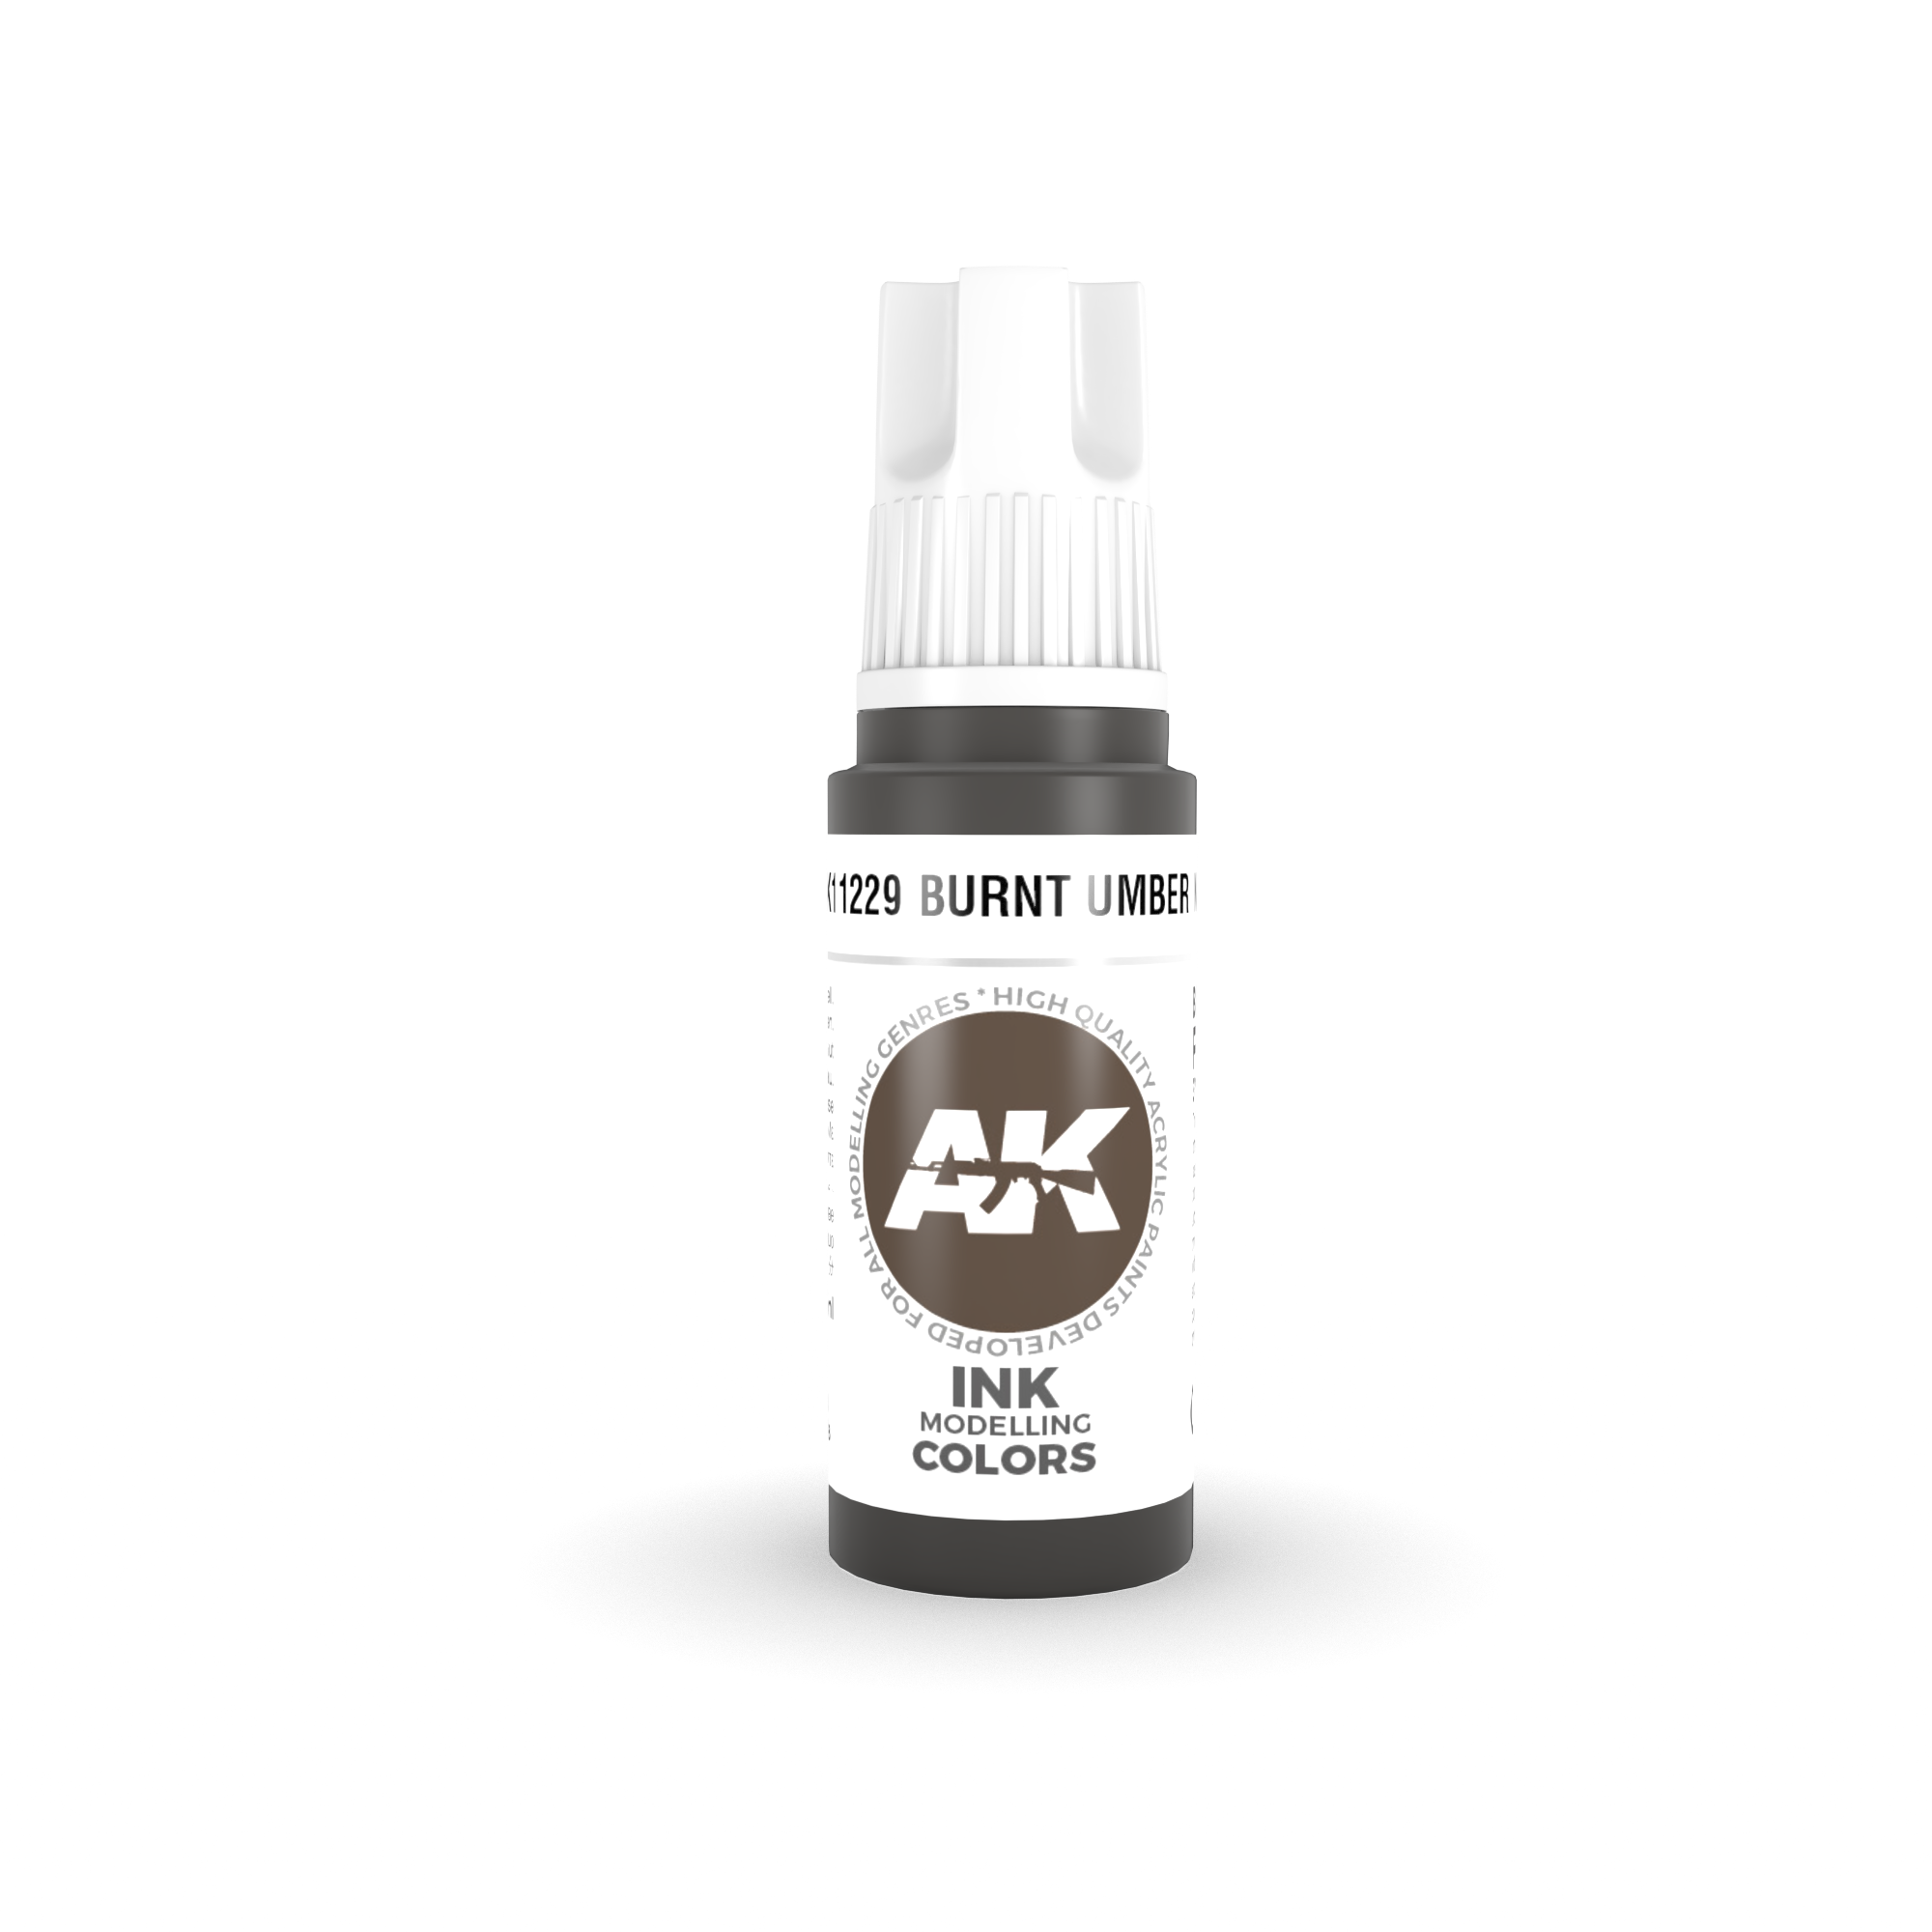 AK-Interactive Burnt Umber Ink Acrylic Modelling Color - 17ml - AK-11229